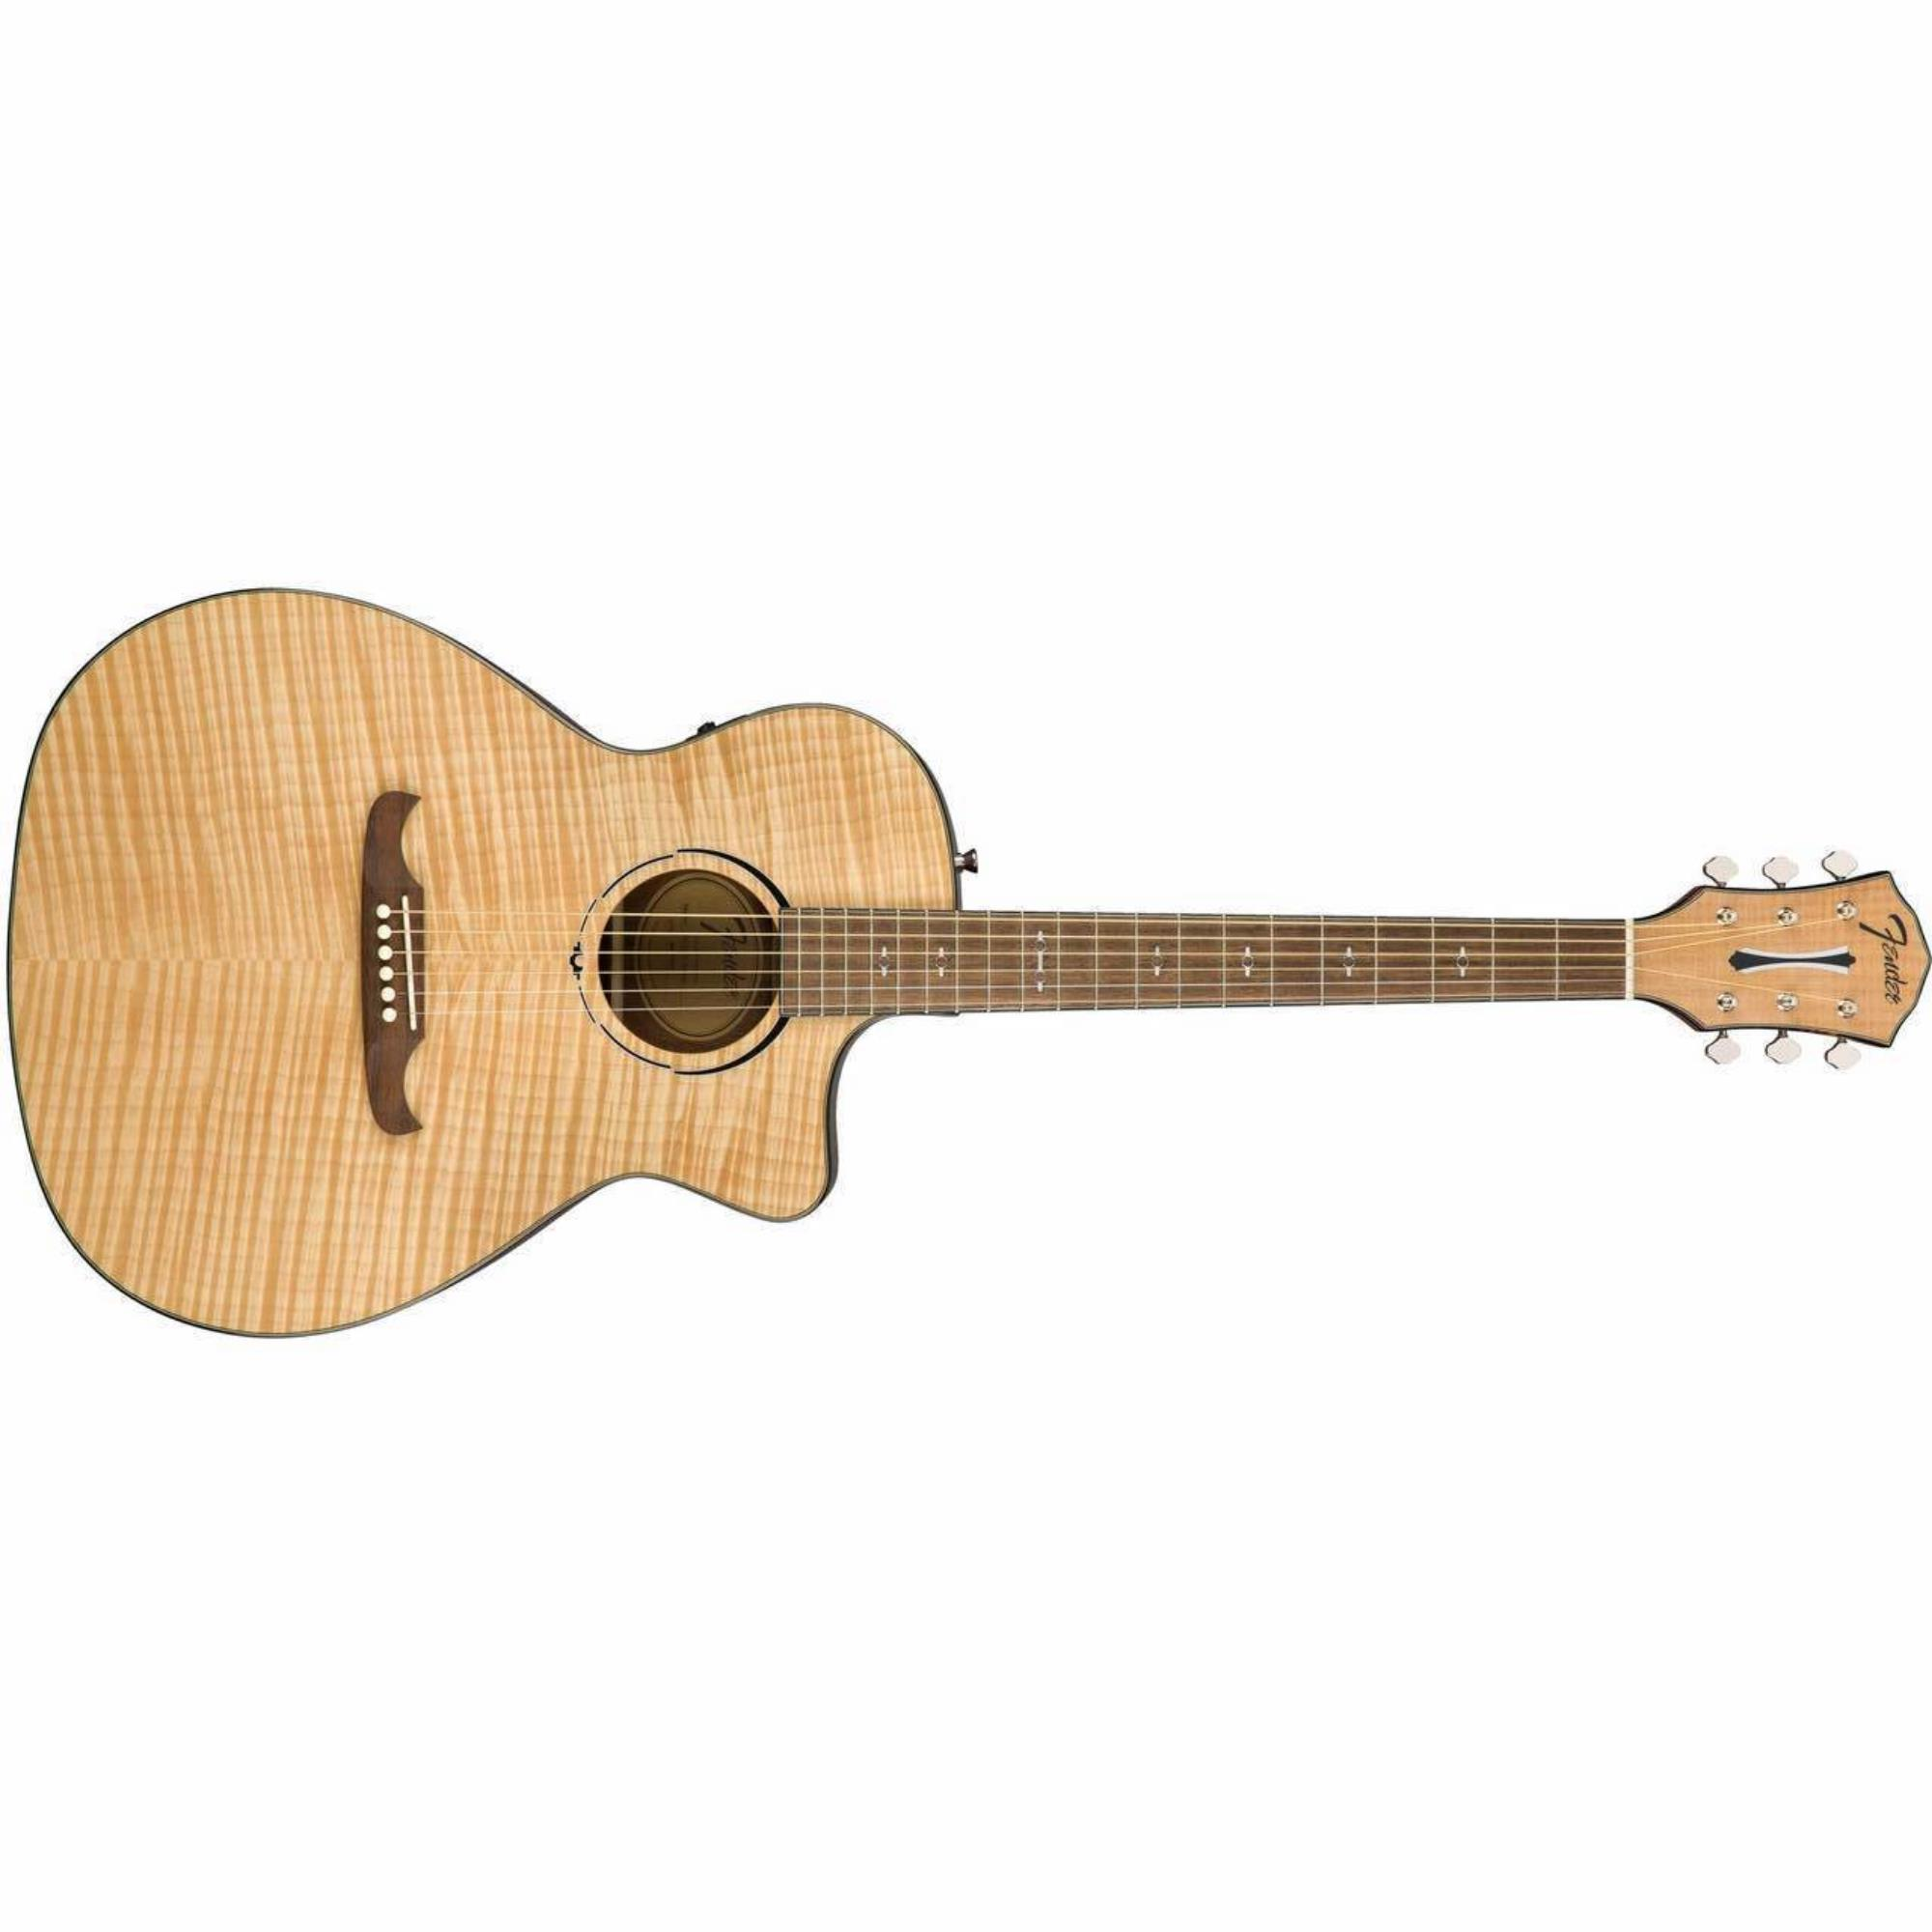 FENDER-FA-345CE-Auditorium-Natural-LR-0971343021-sku-24431